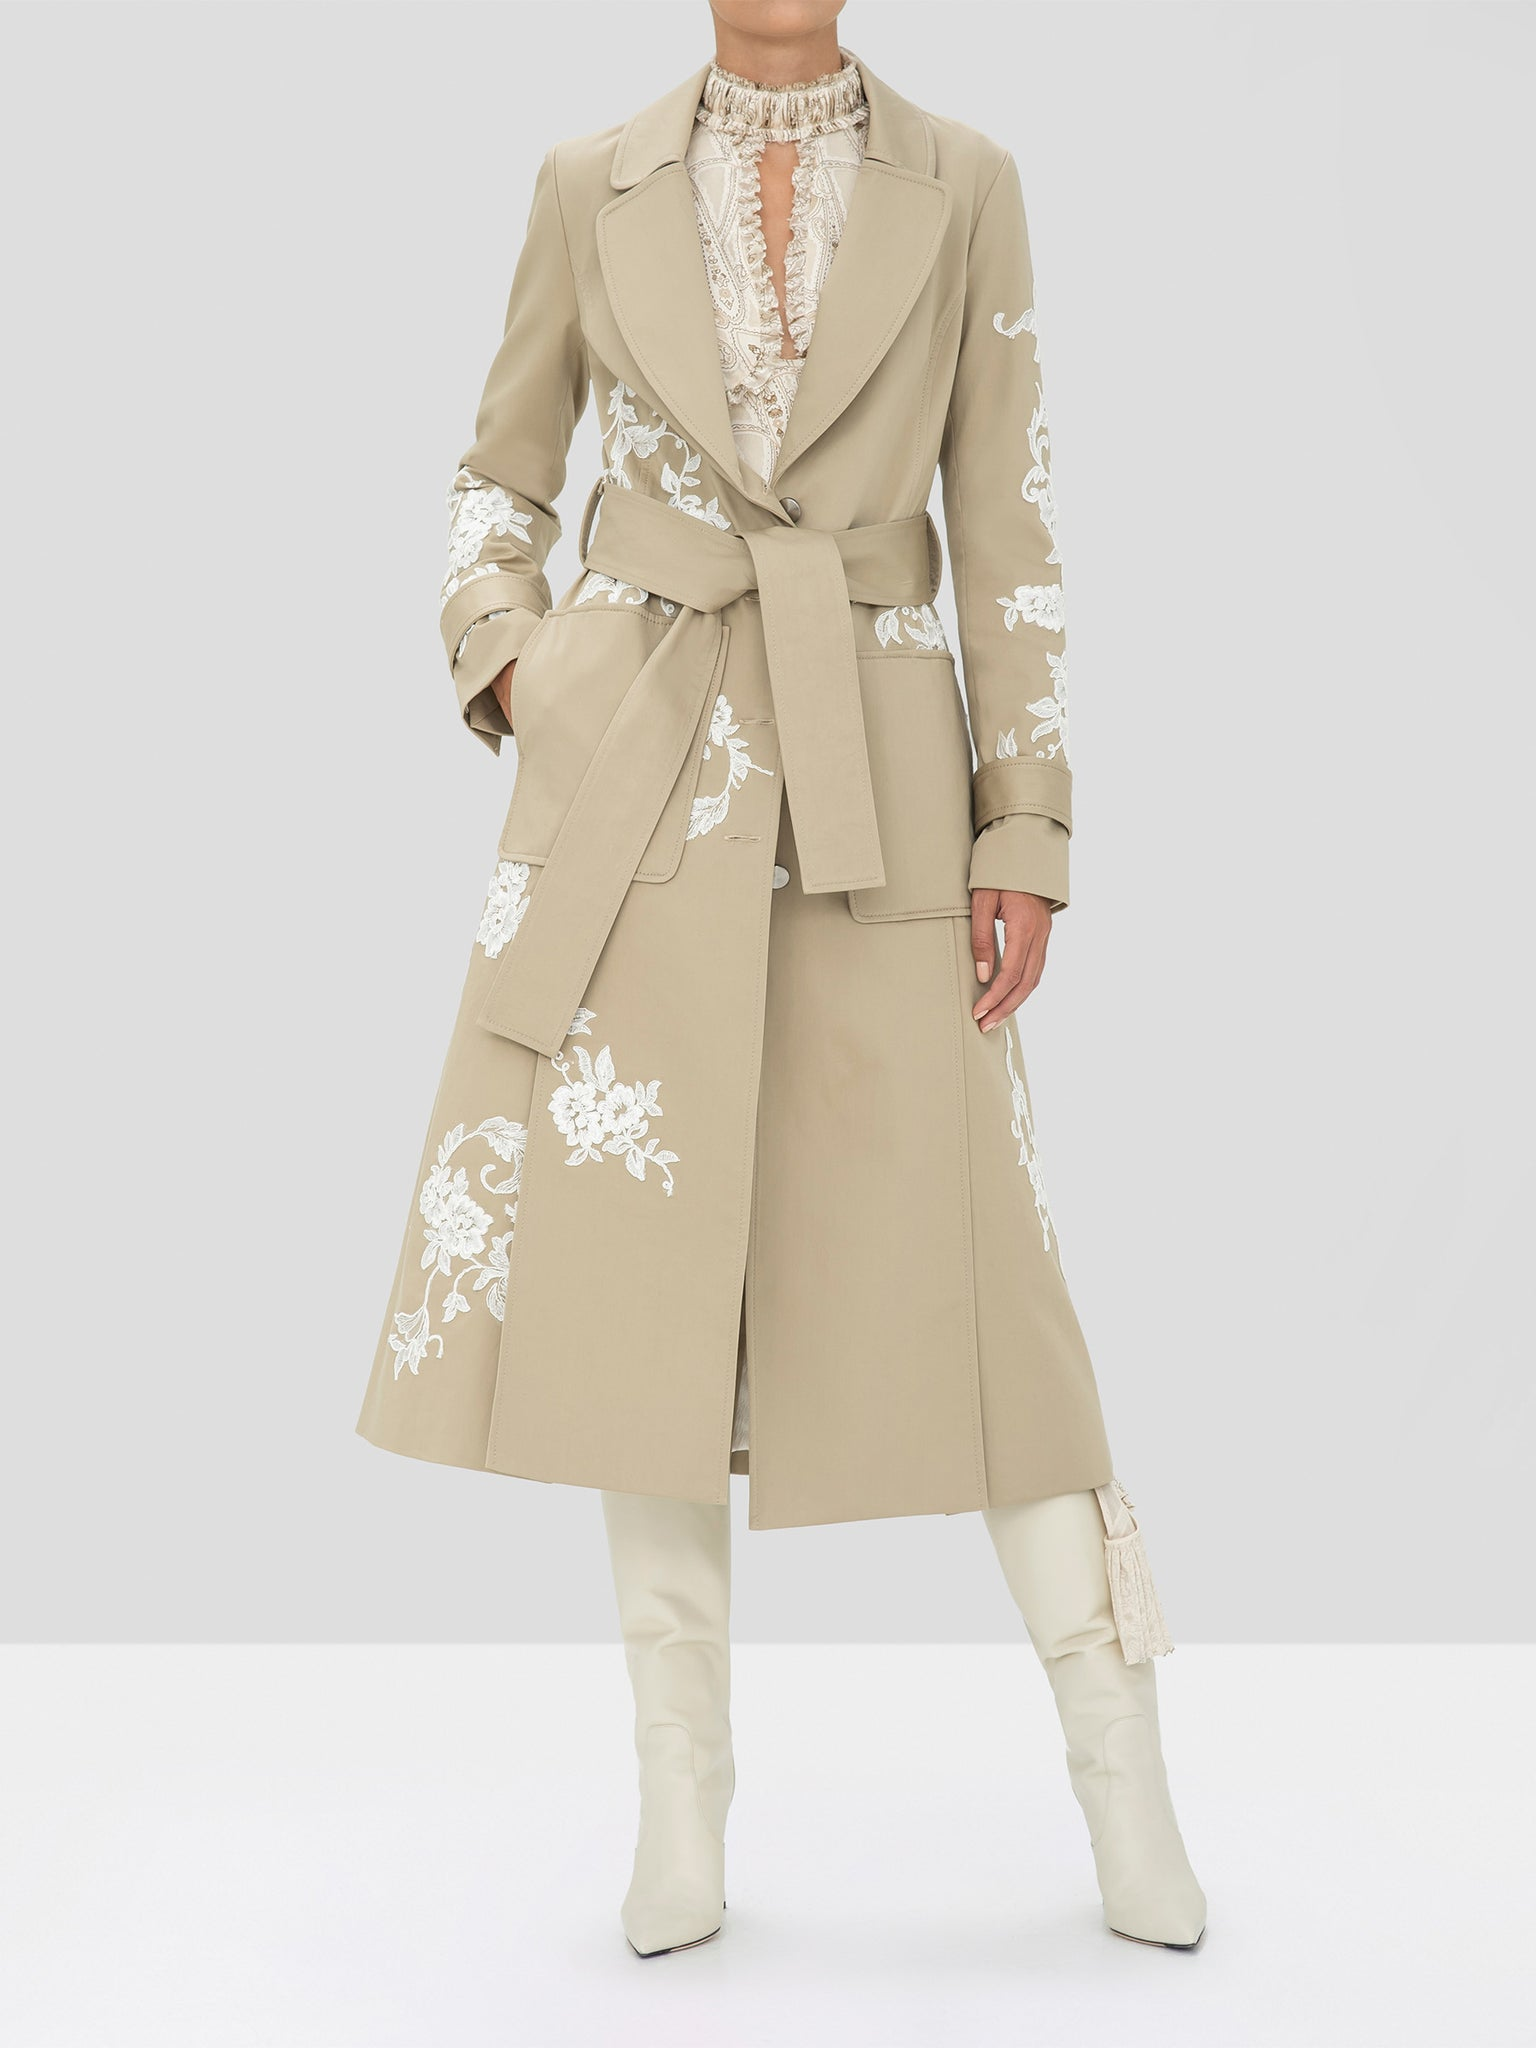 Alexis Prado Coat in Tan from the Holiday 2019 Ready To Wear Collection